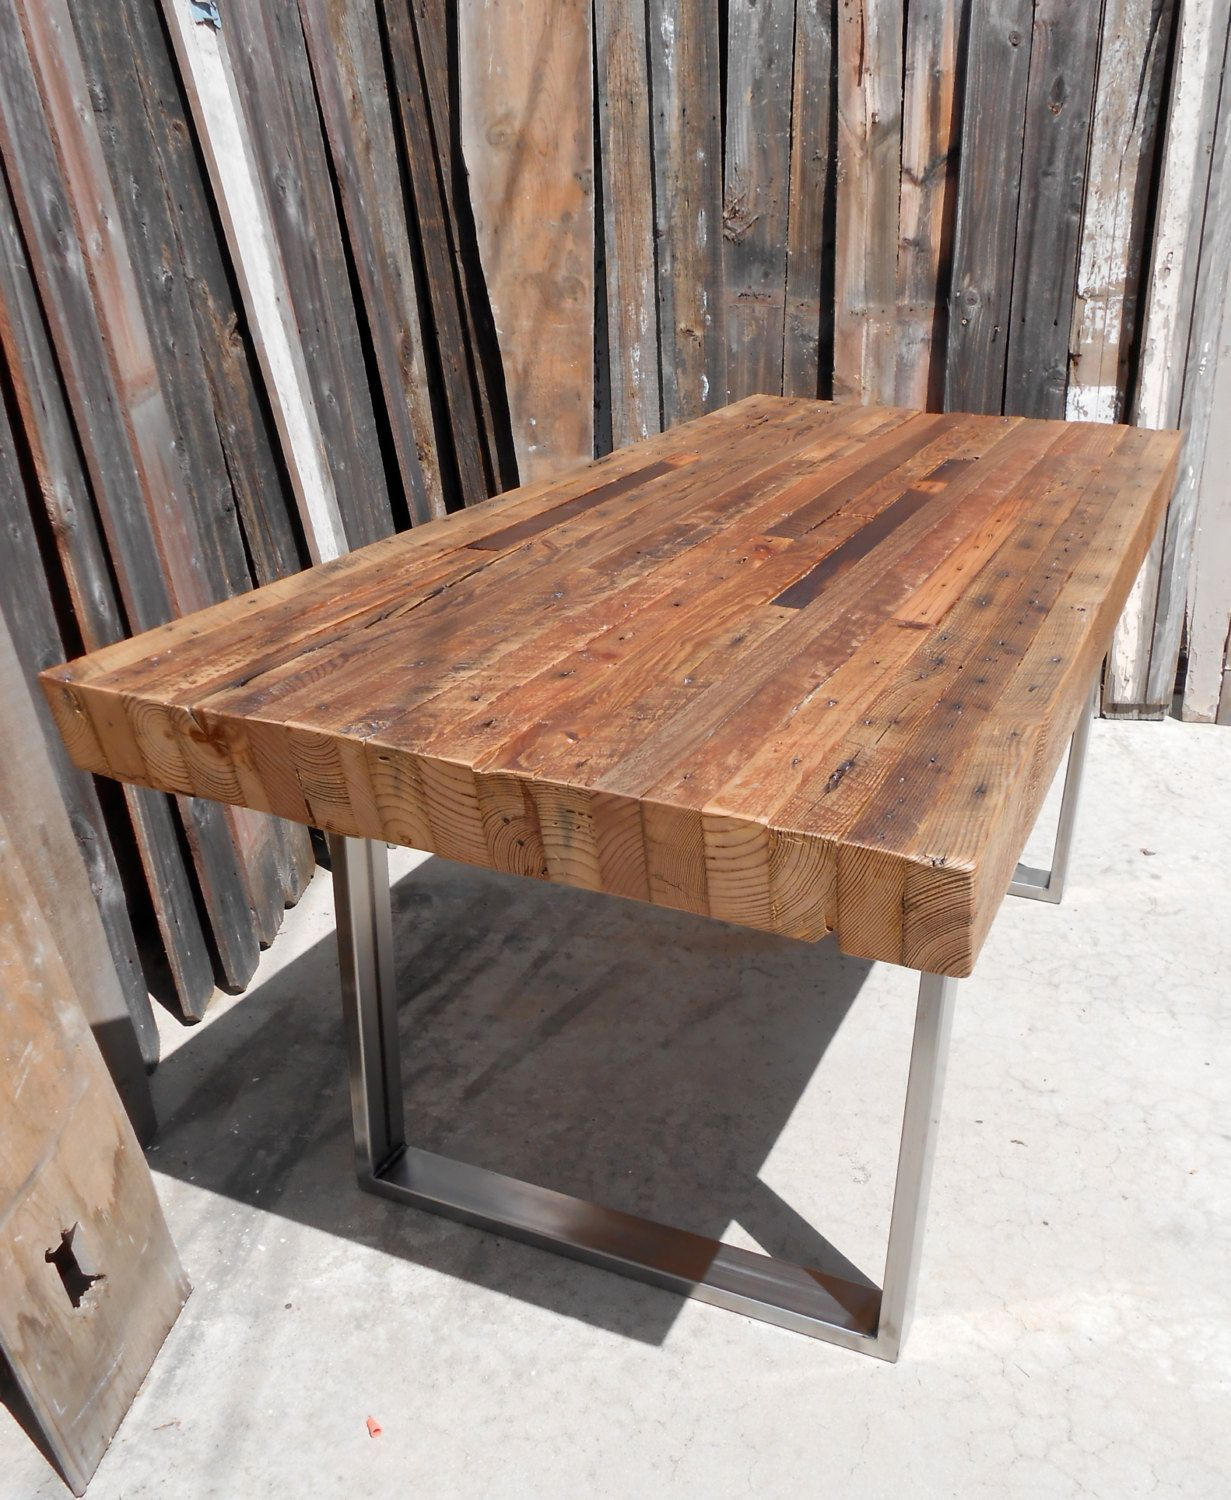 Custom Handmade Rustic Industrial Modern Reclaimed Wood Metal Steel Dining Patio Picnic Table Restaurant Commercial Grade Reclaimed Wood Dining Table Wood Dining Room Wood Dining Table